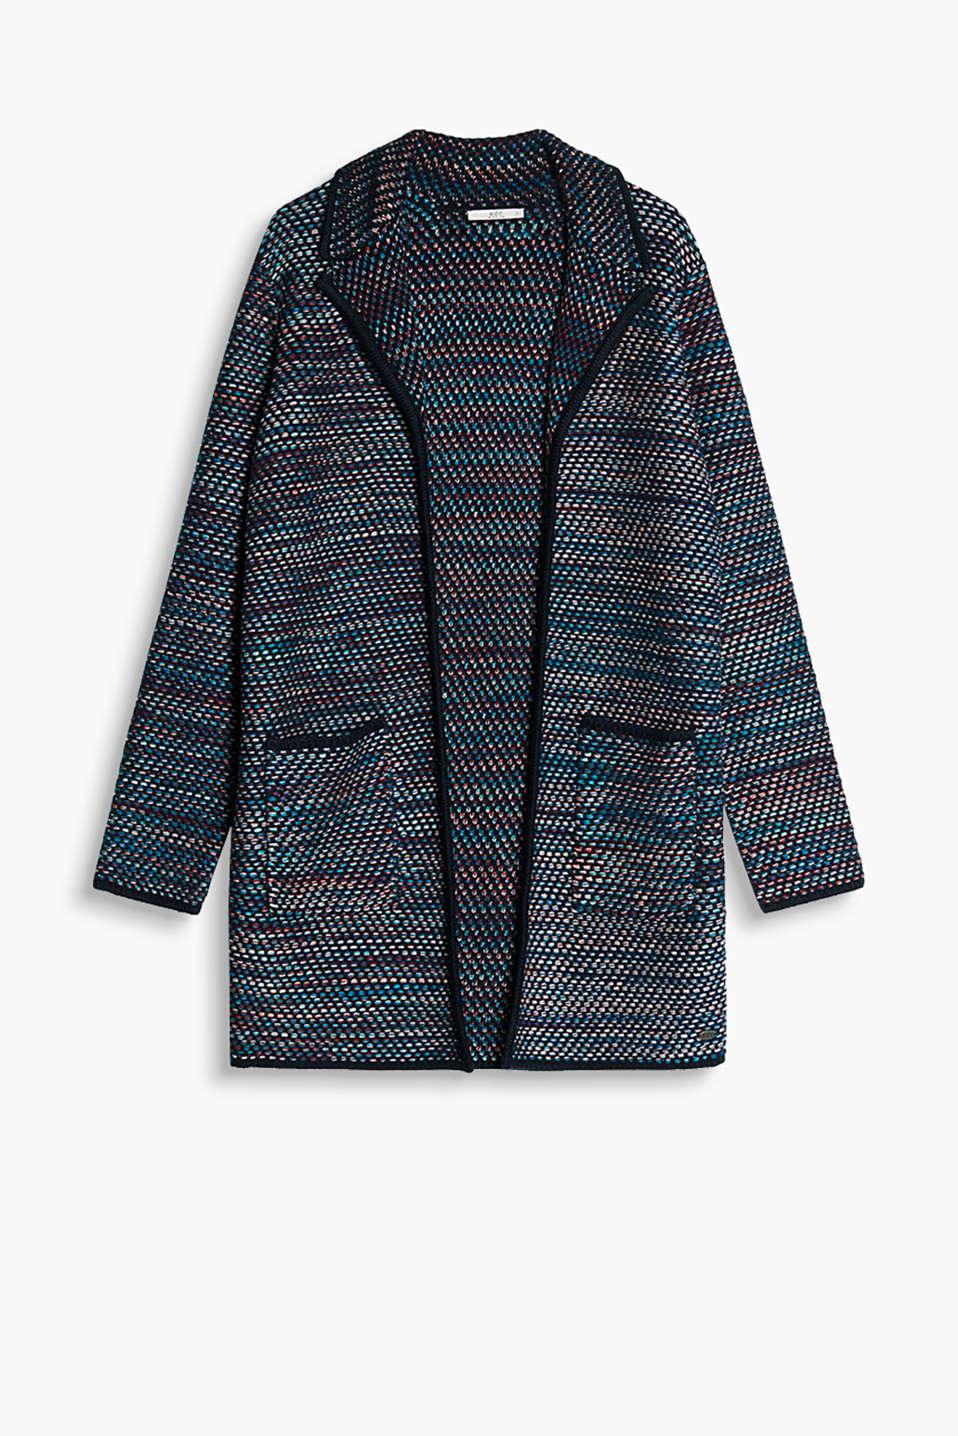 Open coat with a short lapel collar and patch pockets in chunky knit yarn with cotton